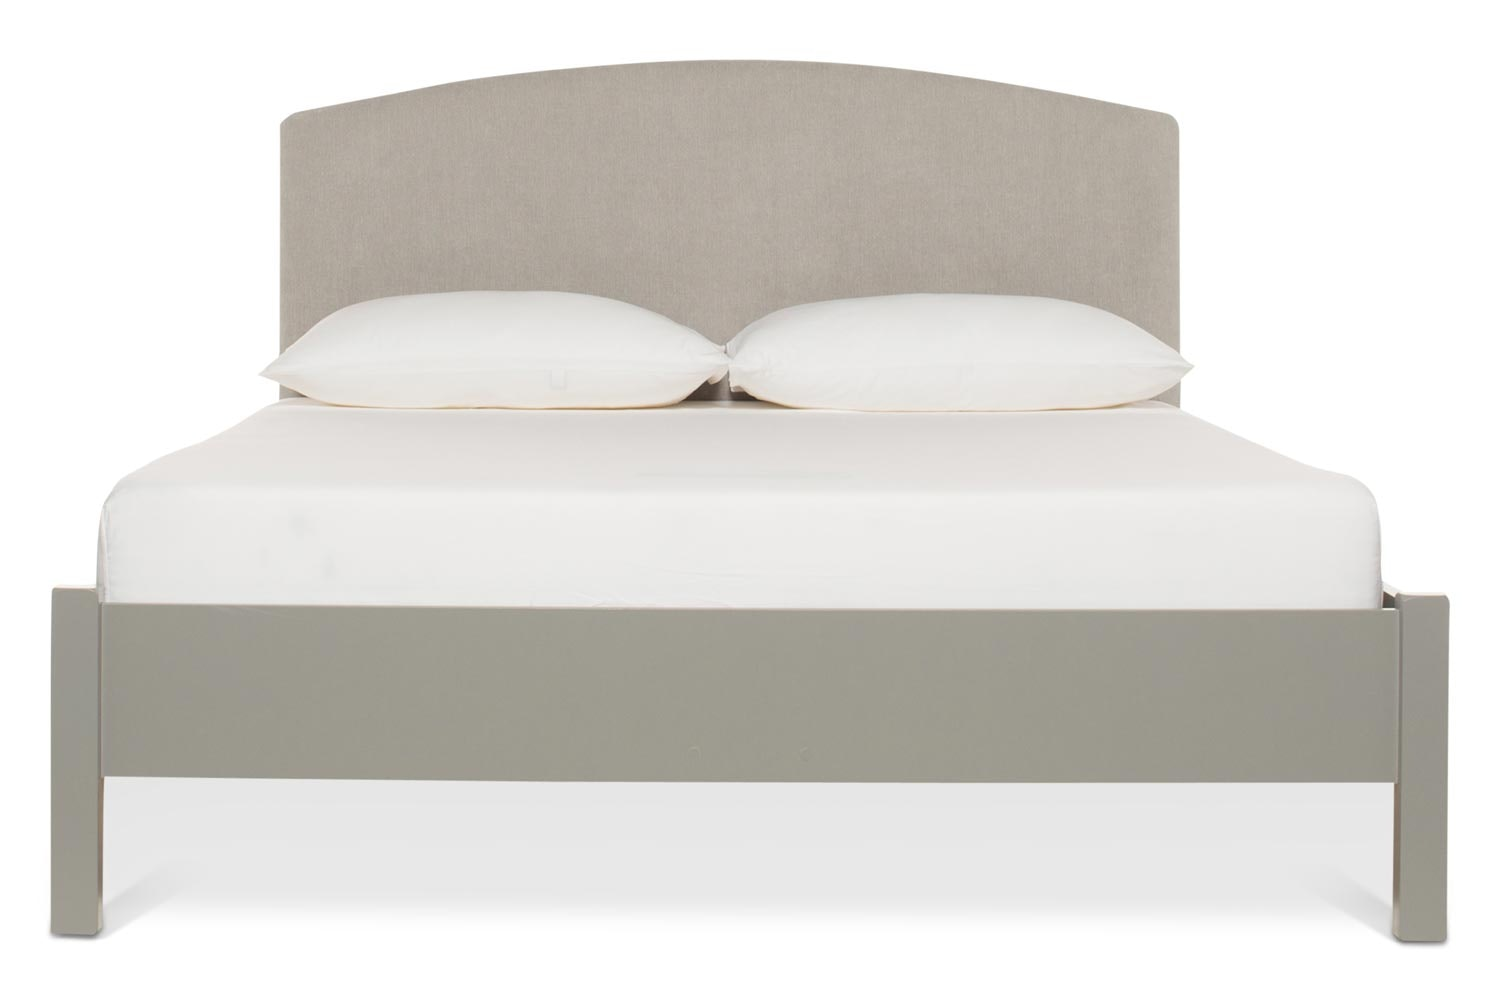 Emily Loft Grey Bed Frame | 6FT | Lennon Headboard